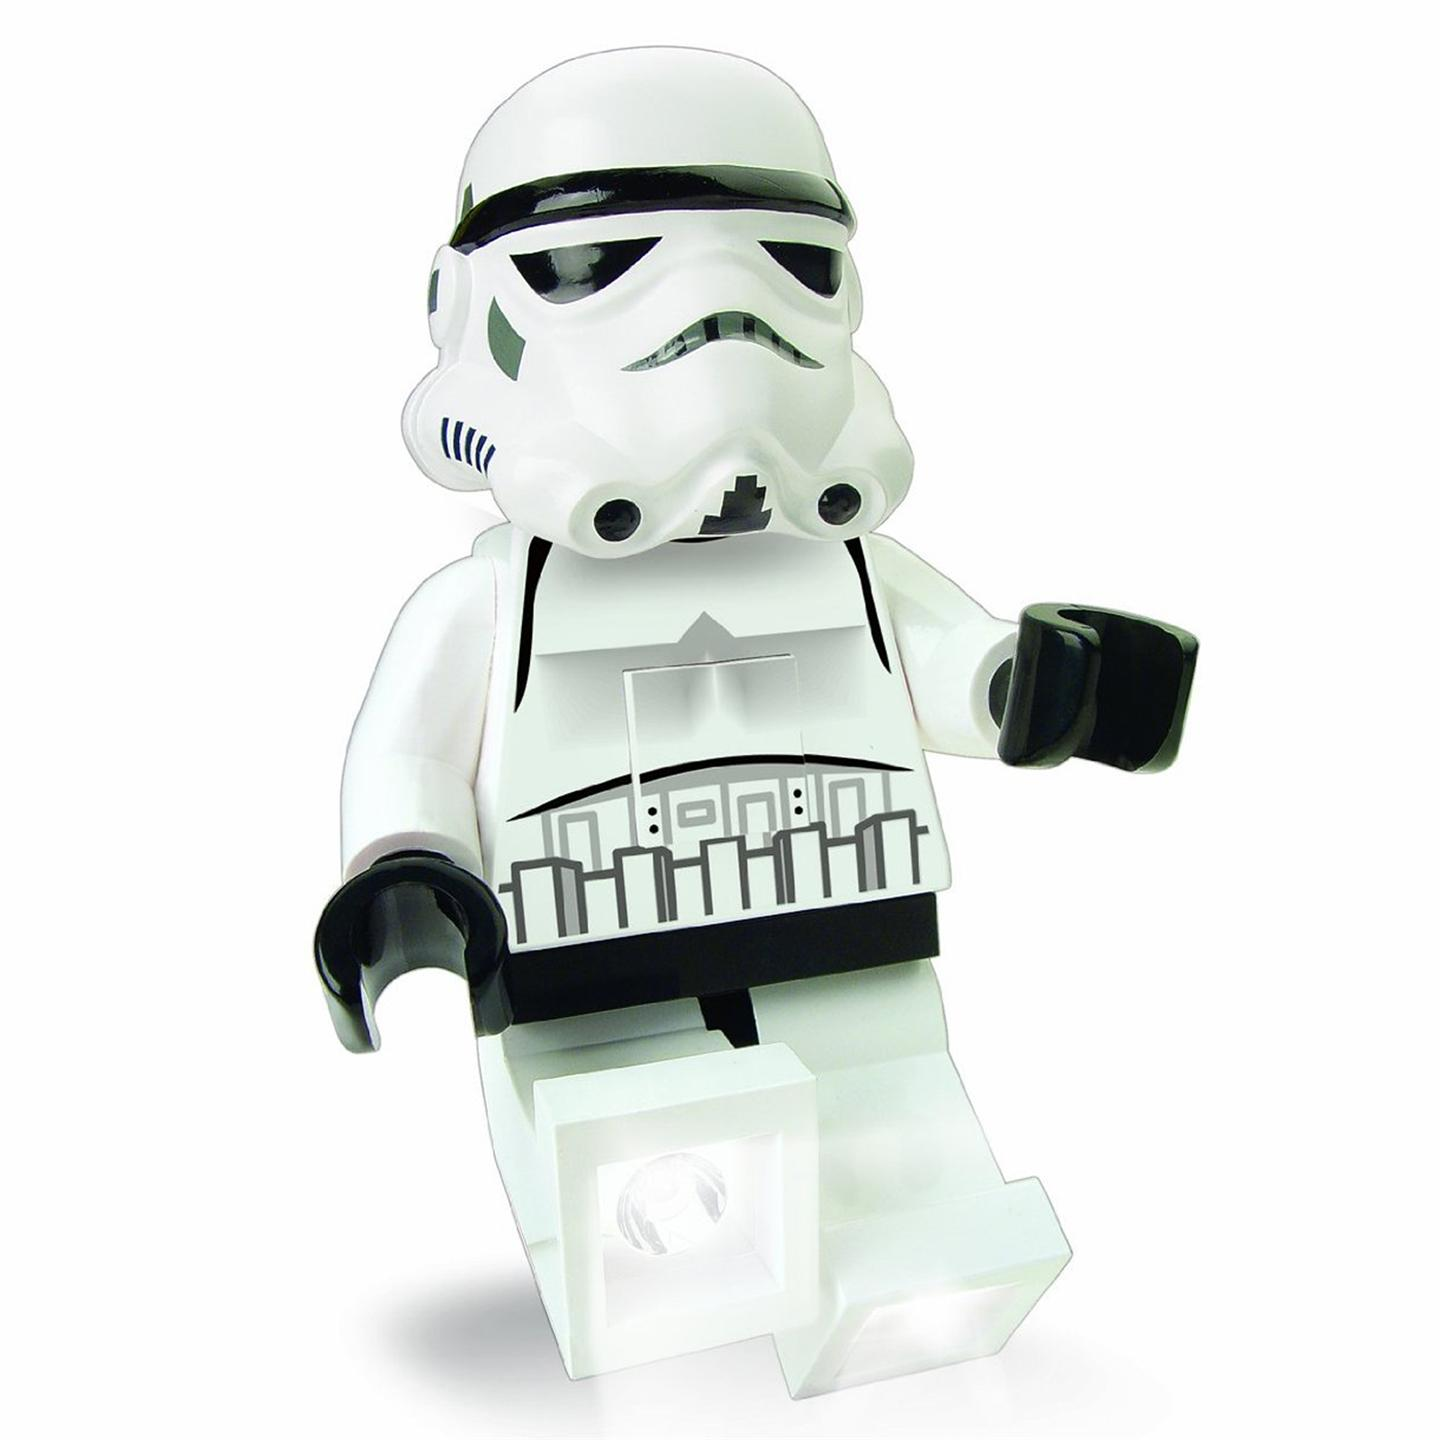 lego star wars storm trooper led lampe licht neu 100 offiziell ebay. Black Bedroom Furniture Sets. Home Design Ideas